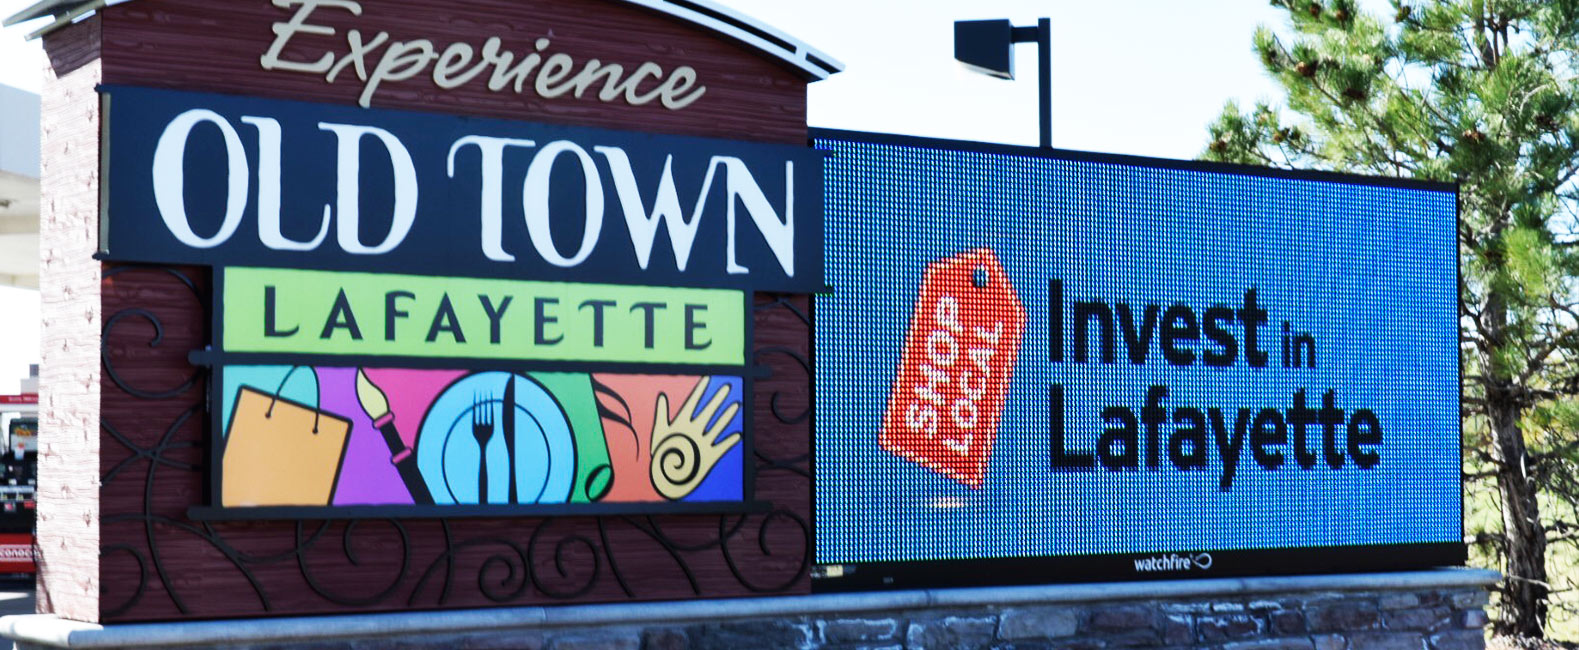 High Resolution Outdoor LED Signs